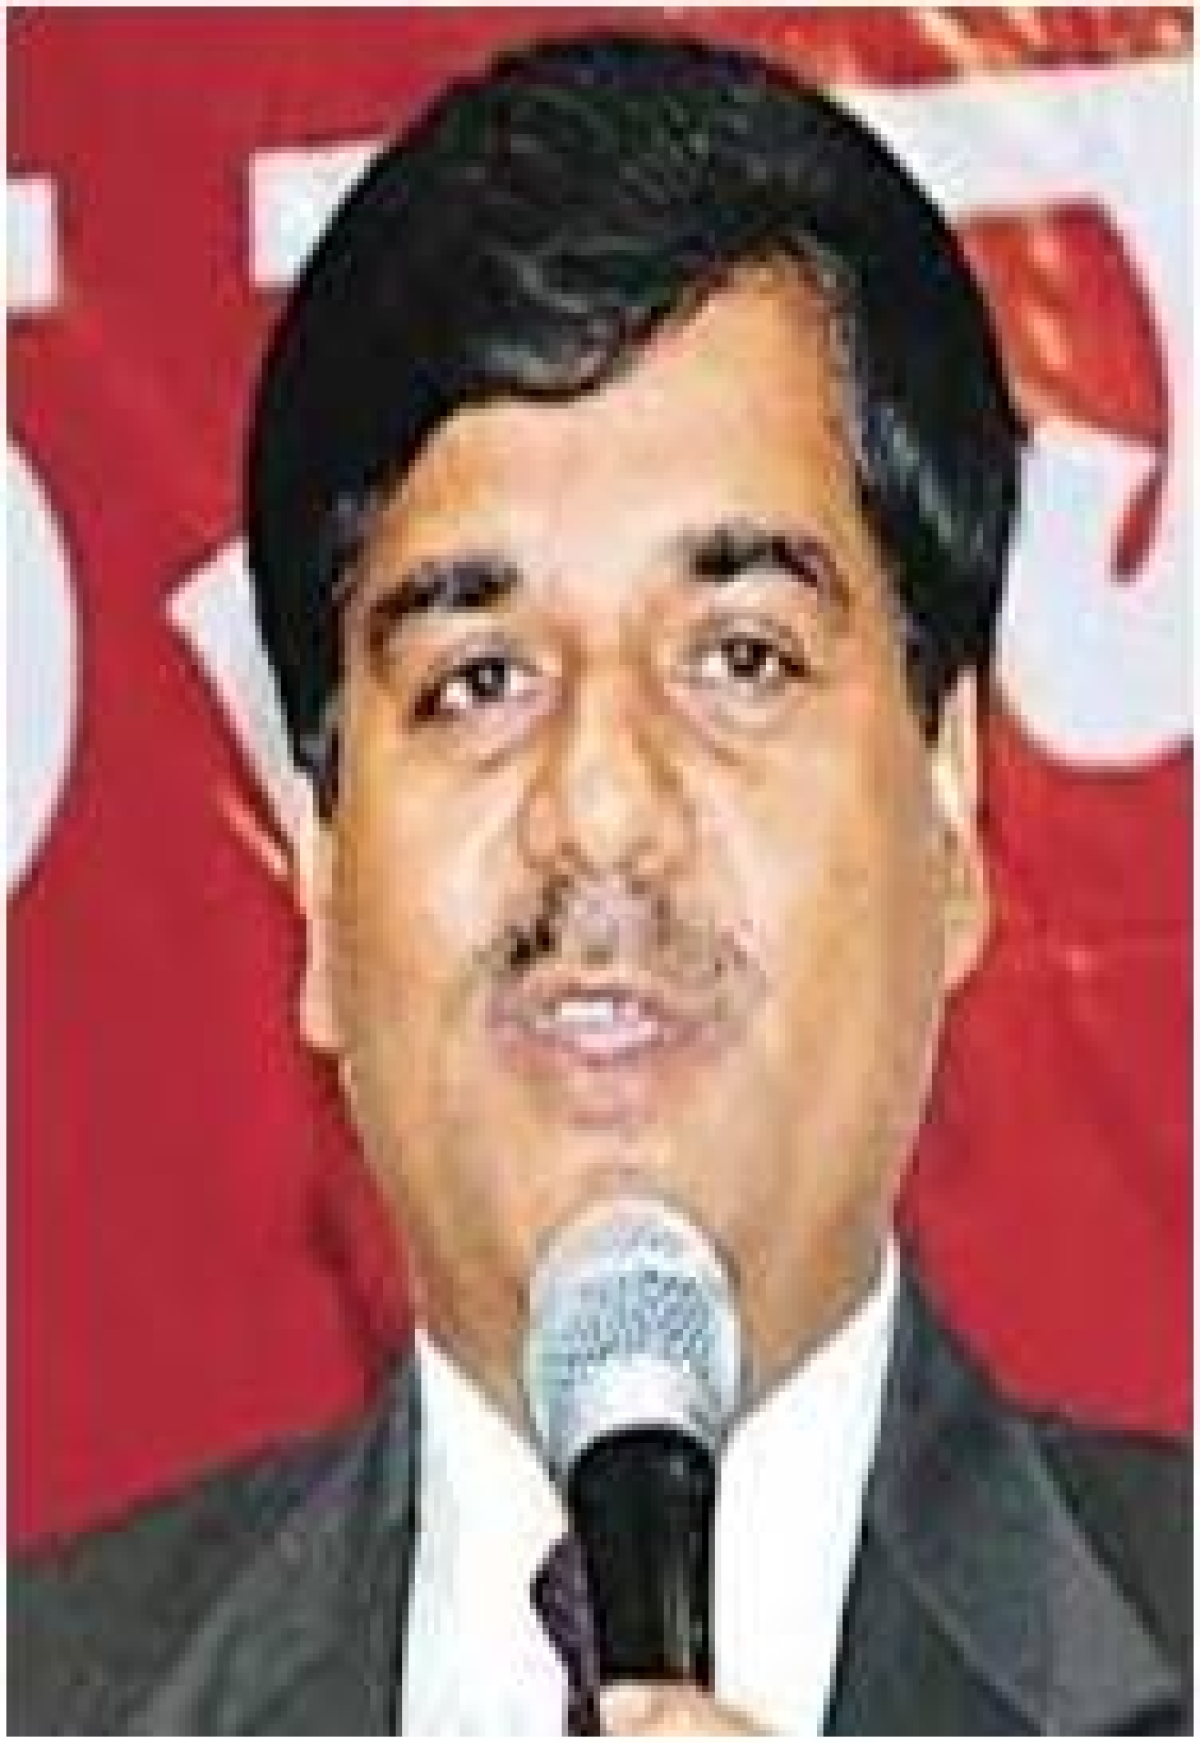 Bhopal: 'Controversy man' made AFRC chief; govt flayed